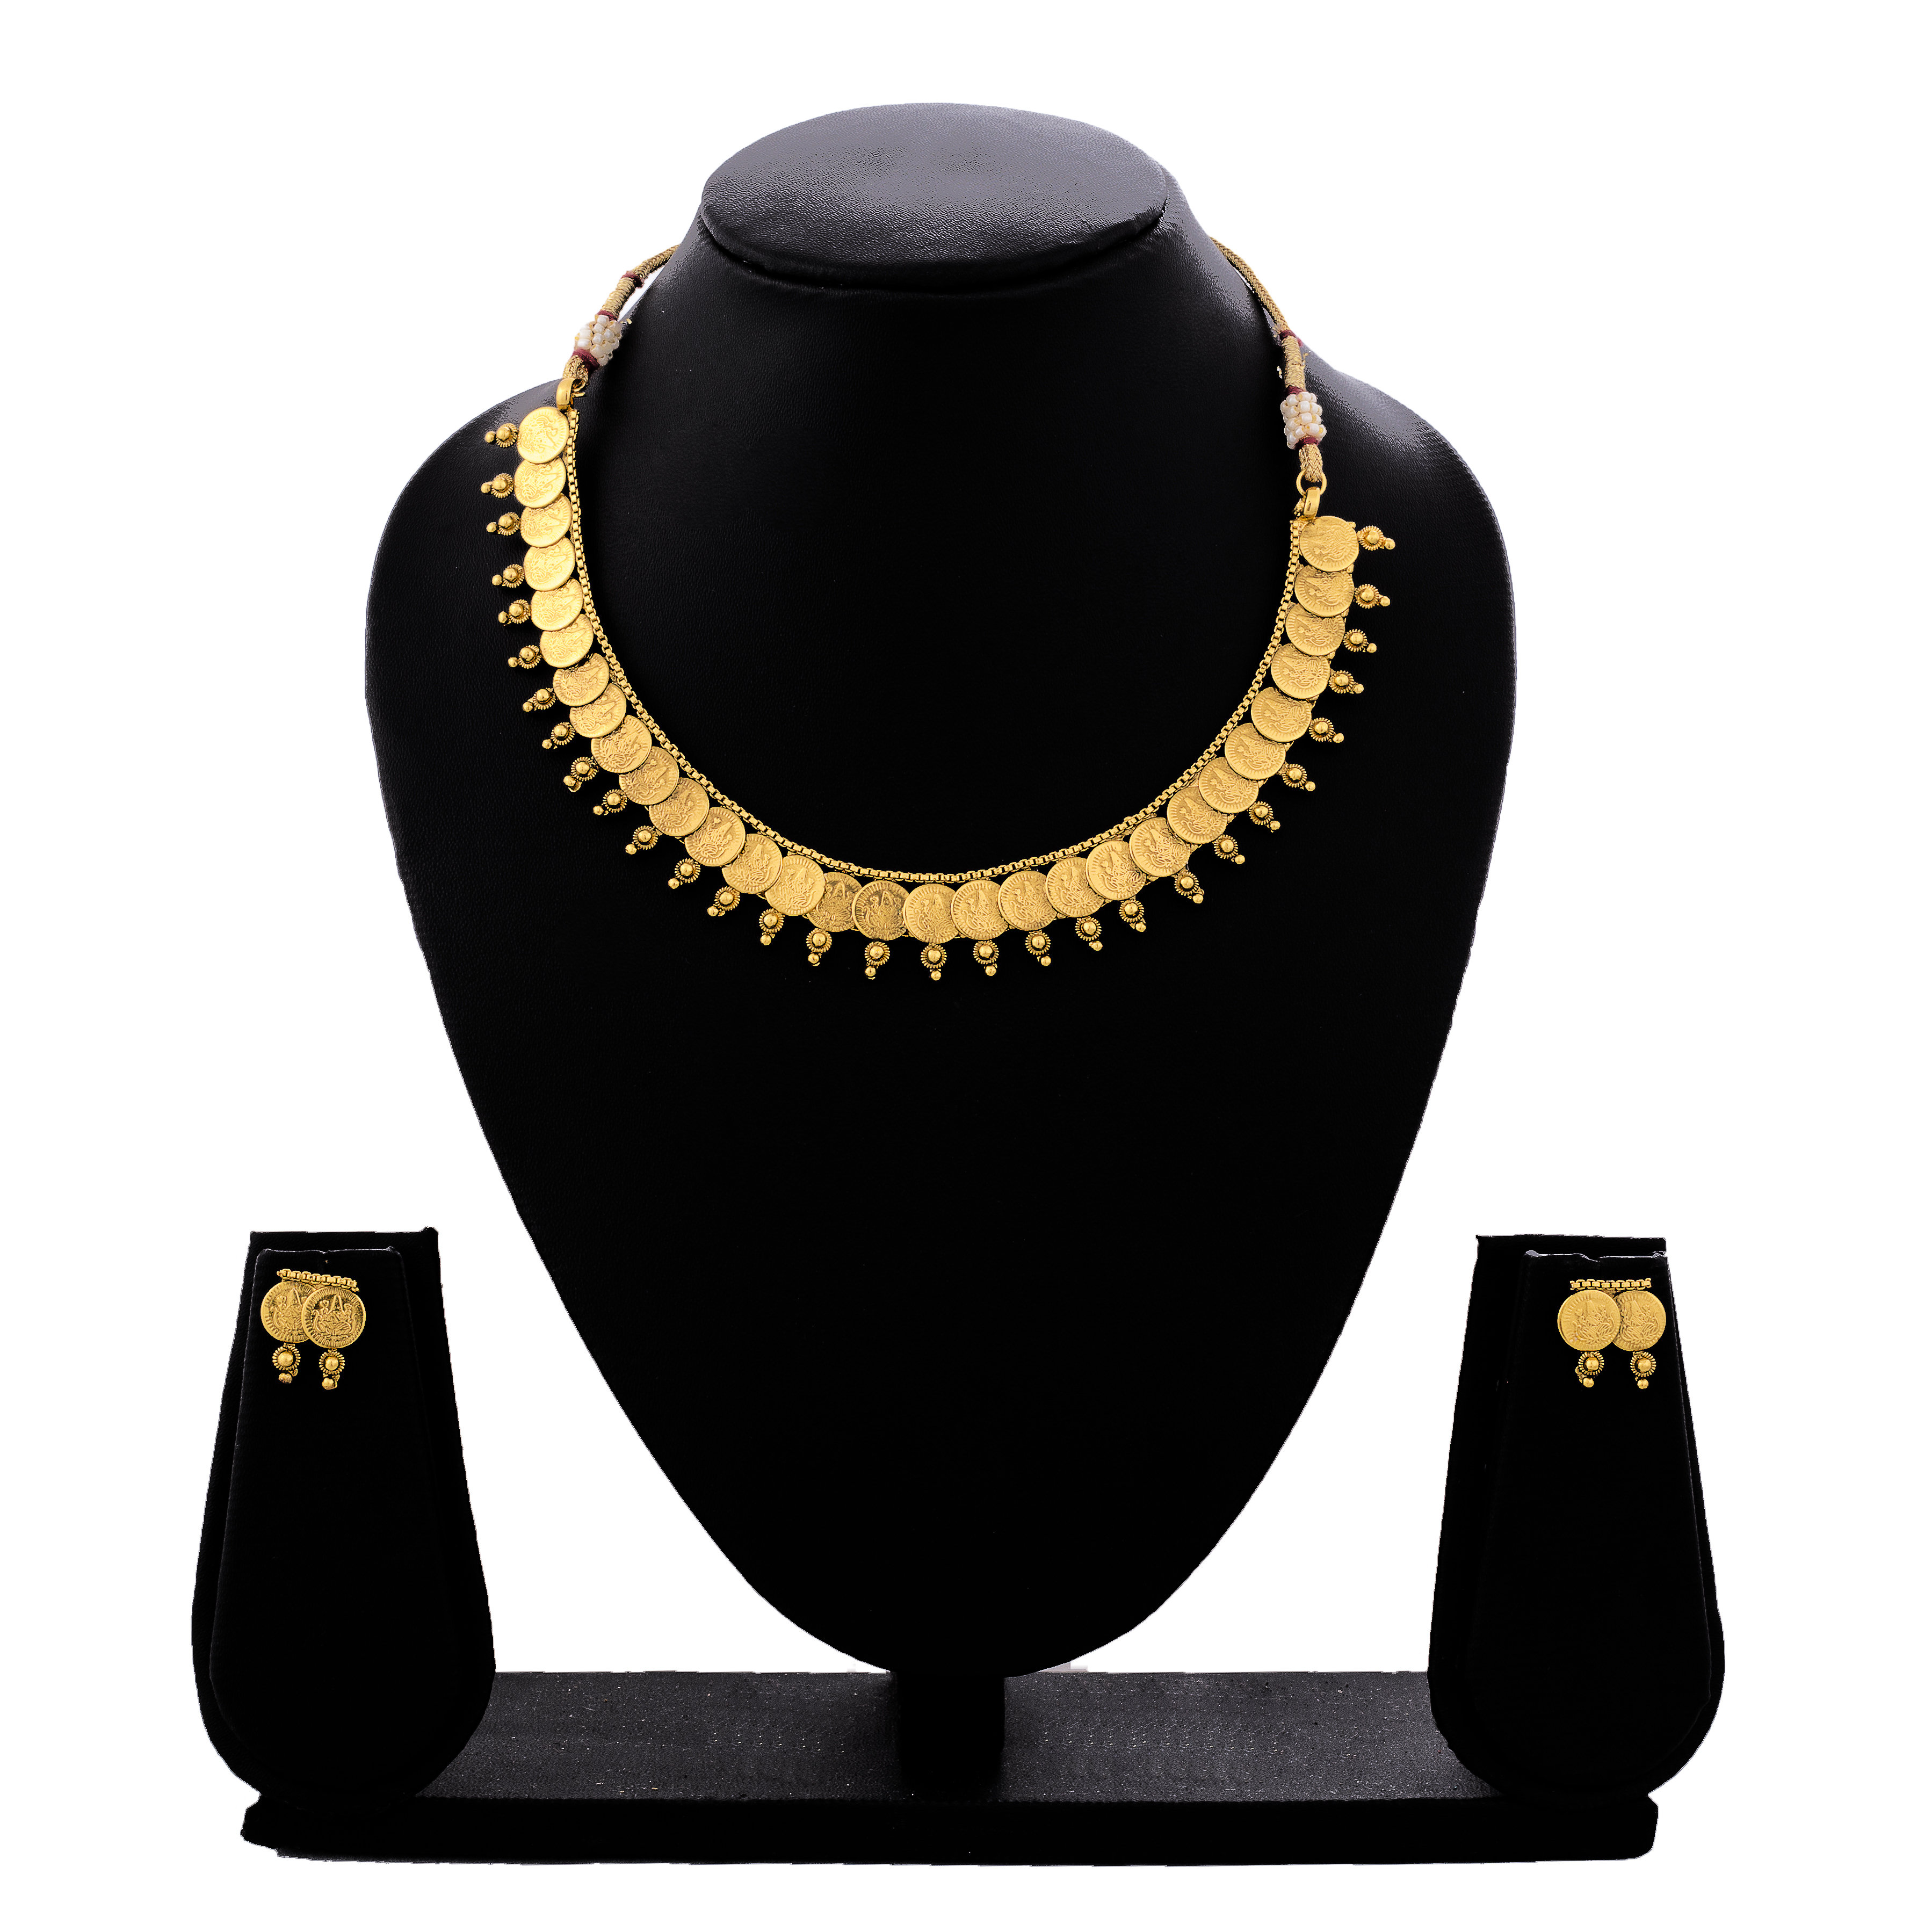 73c7c6135b2 One gram gram gold plated mahalaxmi coin designer necklace set with earrings